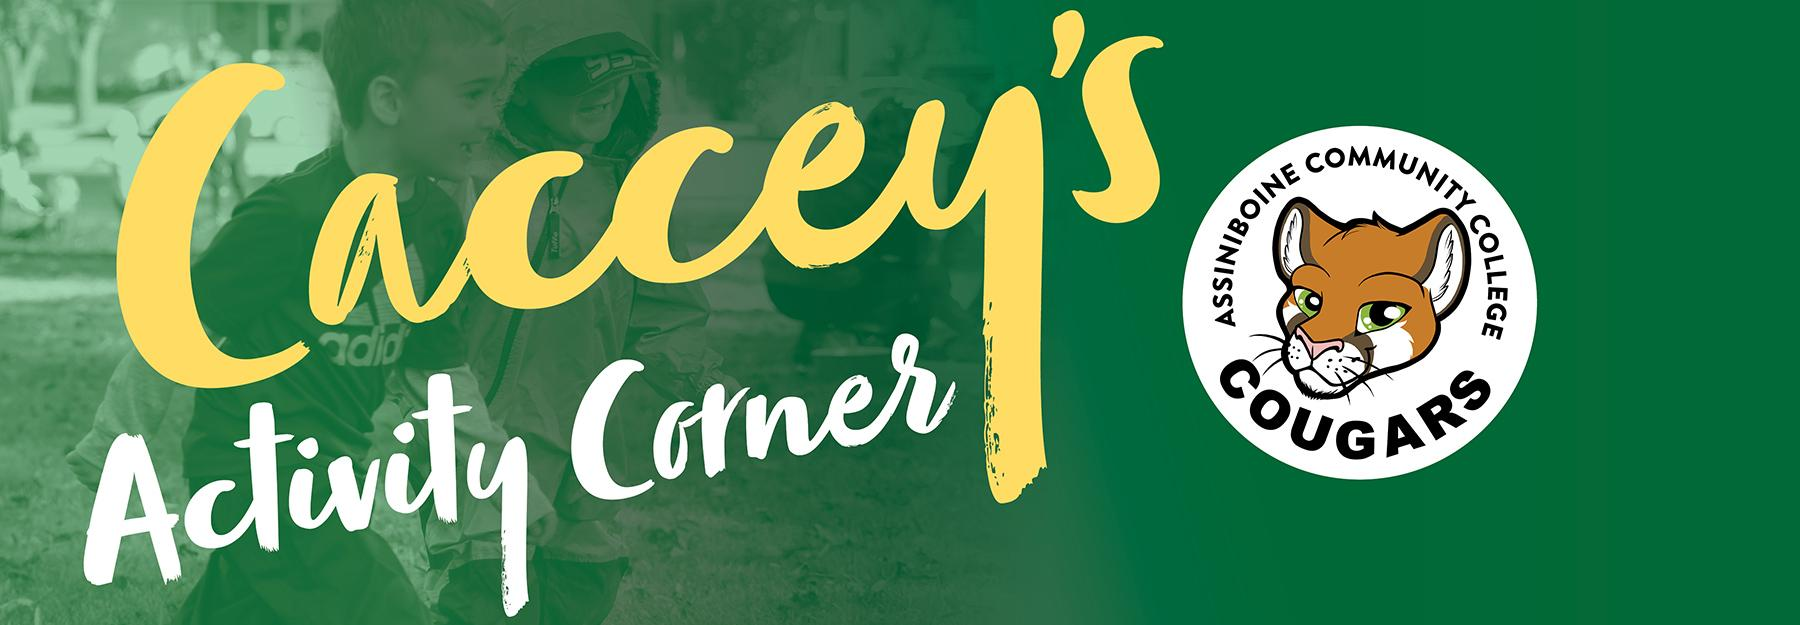 Caccey's Activity Corner banner.